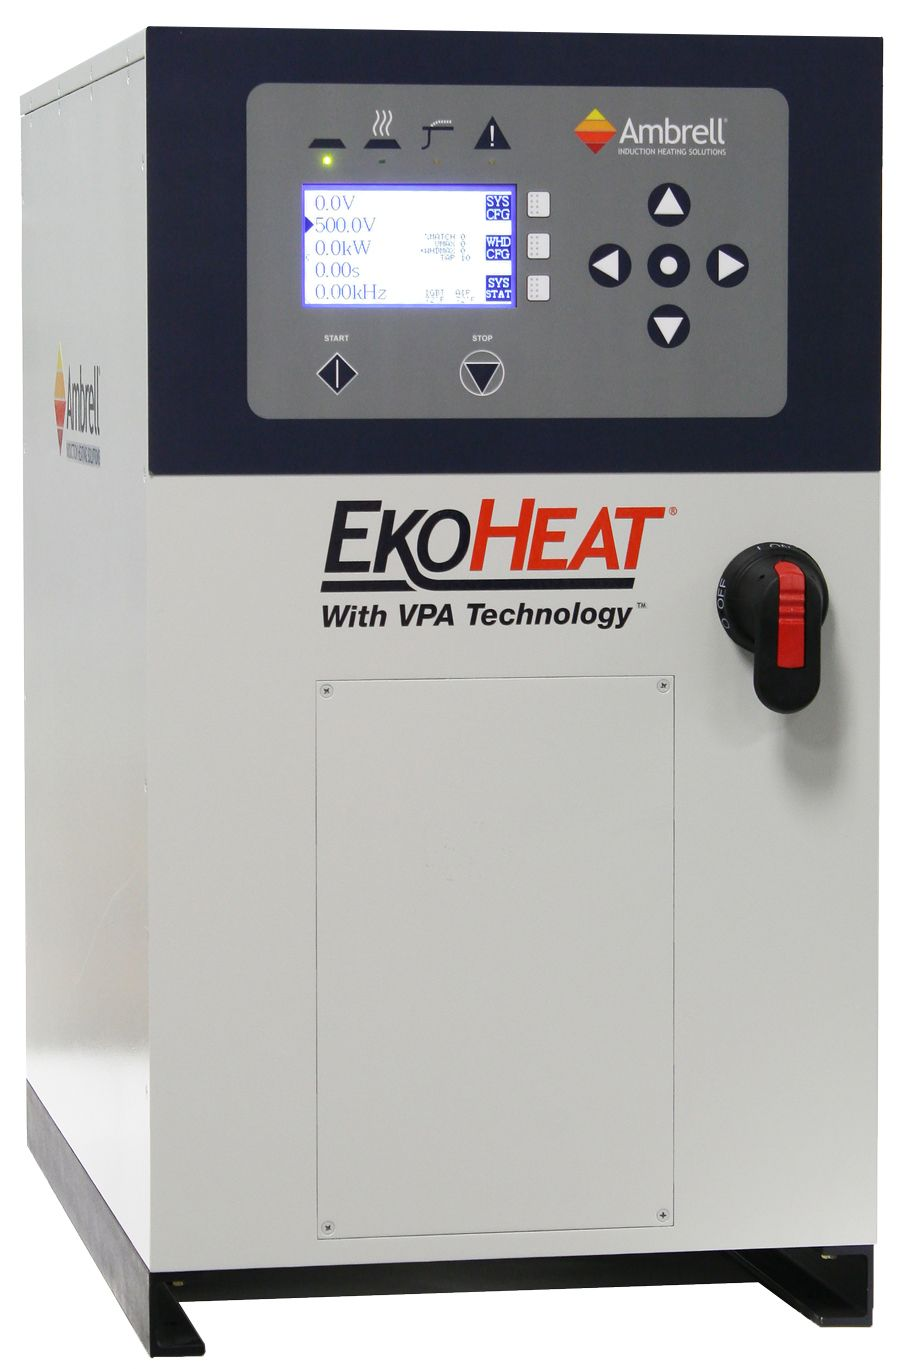 Ekoheat With Vpa Technology 30 50 Kw Heating Systems Induction Heating Technology